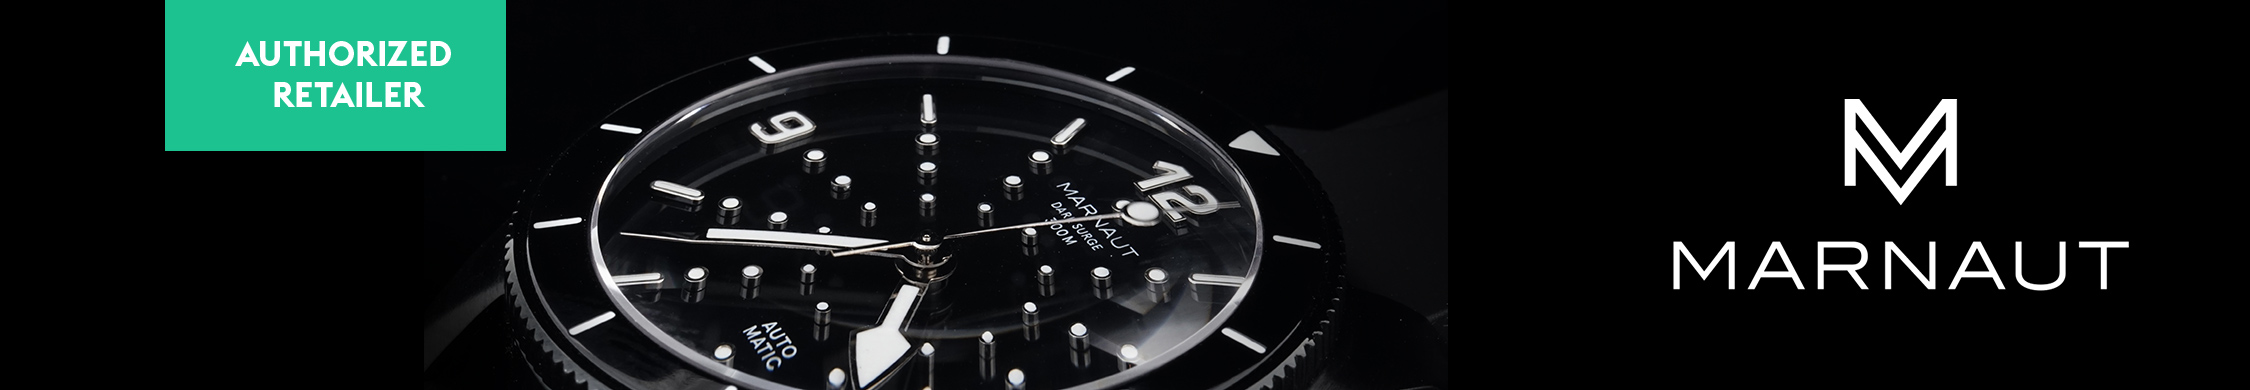 Authorized Retailer for Marnaut Watches